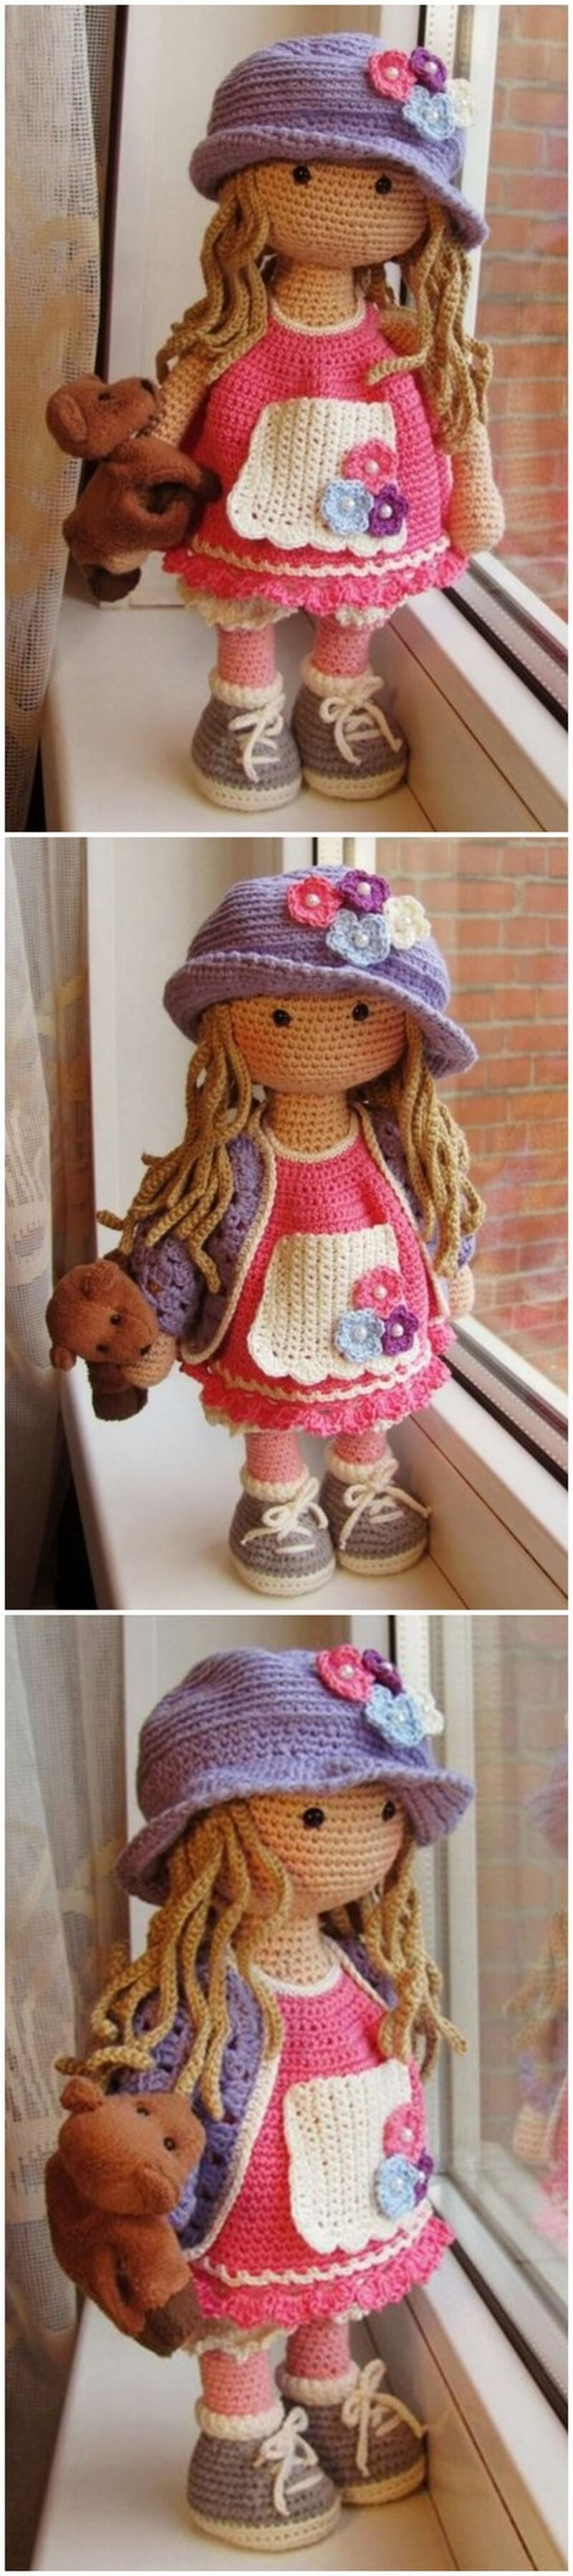 Crochet Amigurumi Doll Pattern (59)